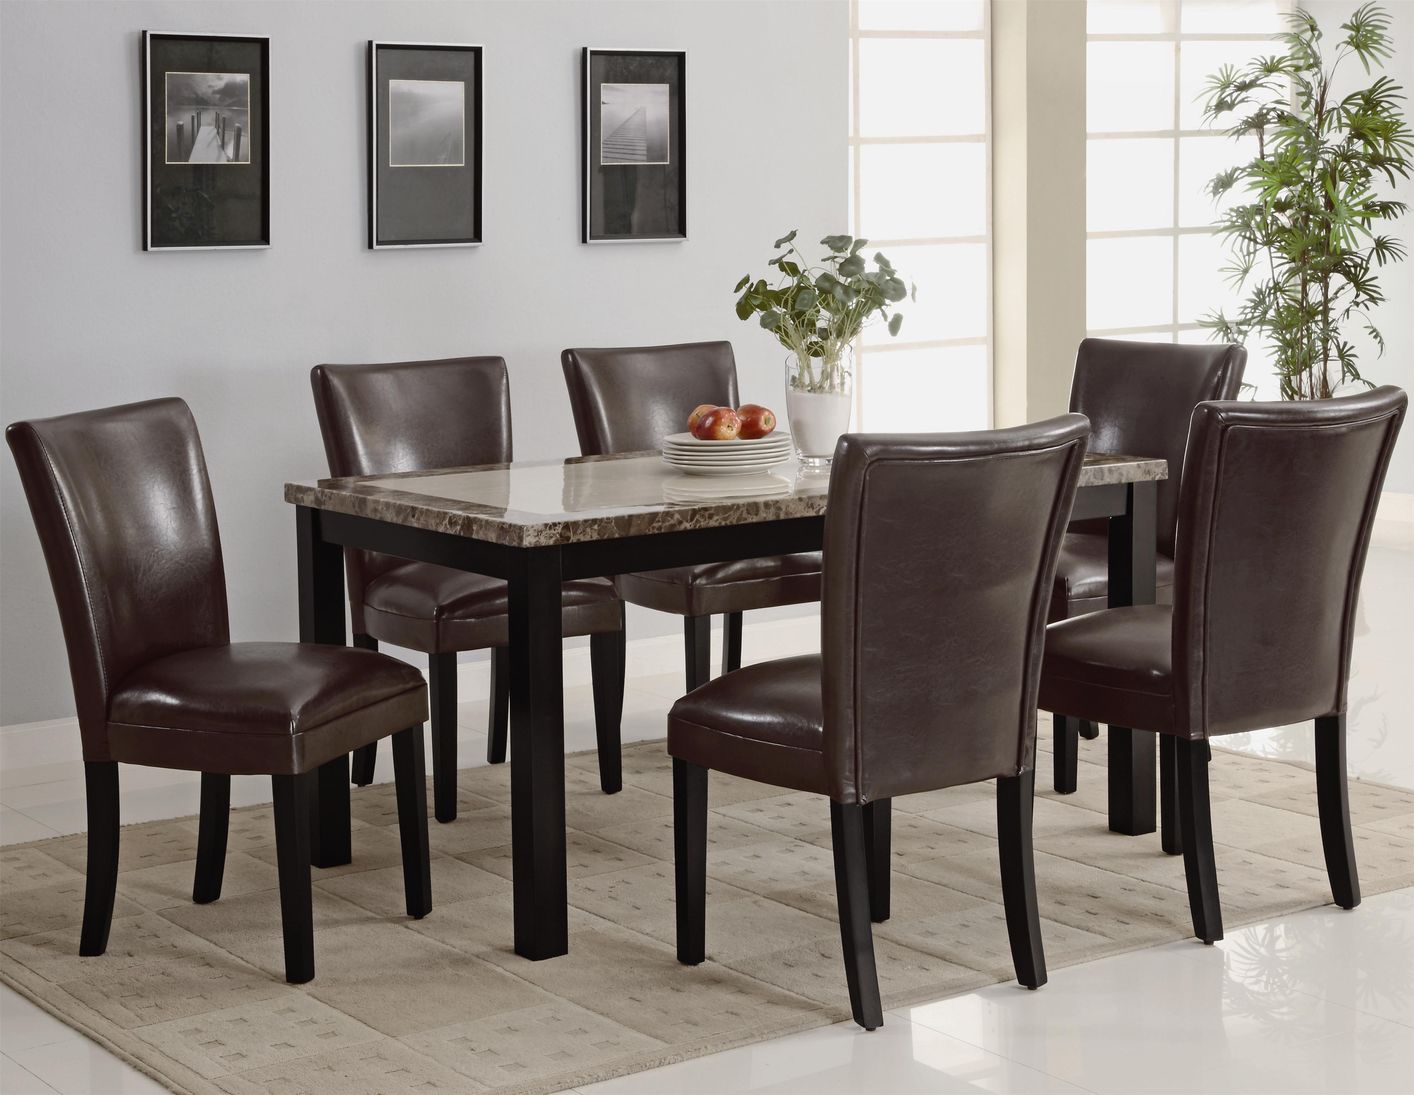 carter dark brown wood and marble dining table set steal a sofa furniture outlet los angeles ca. Black Bedroom Furniture Sets. Home Design Ideas